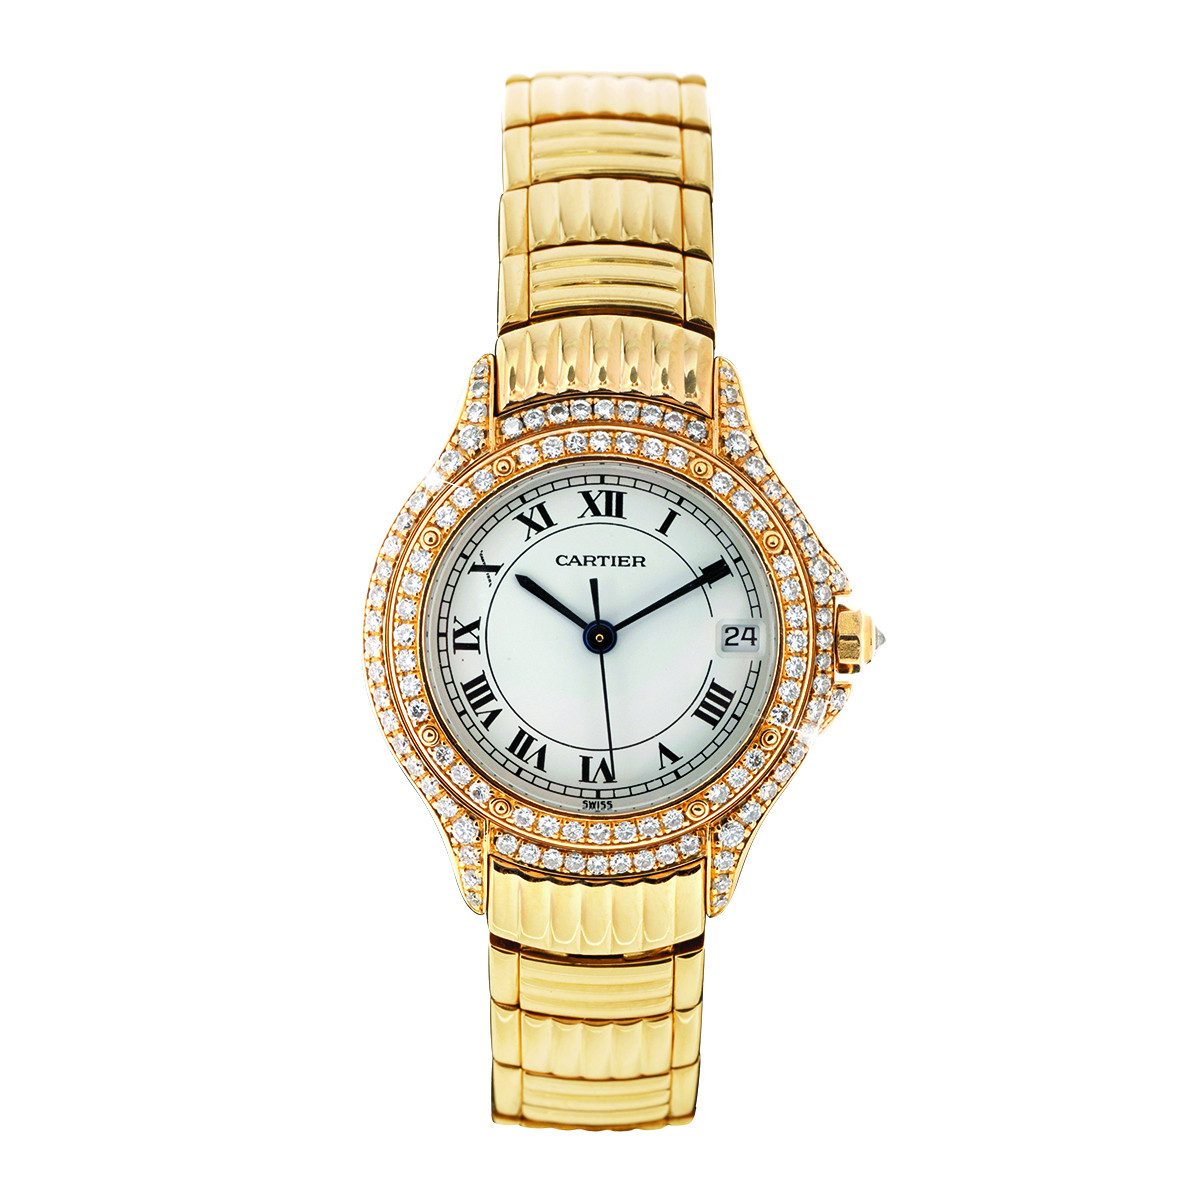 Preowned Women's Cartier Cougar Watch